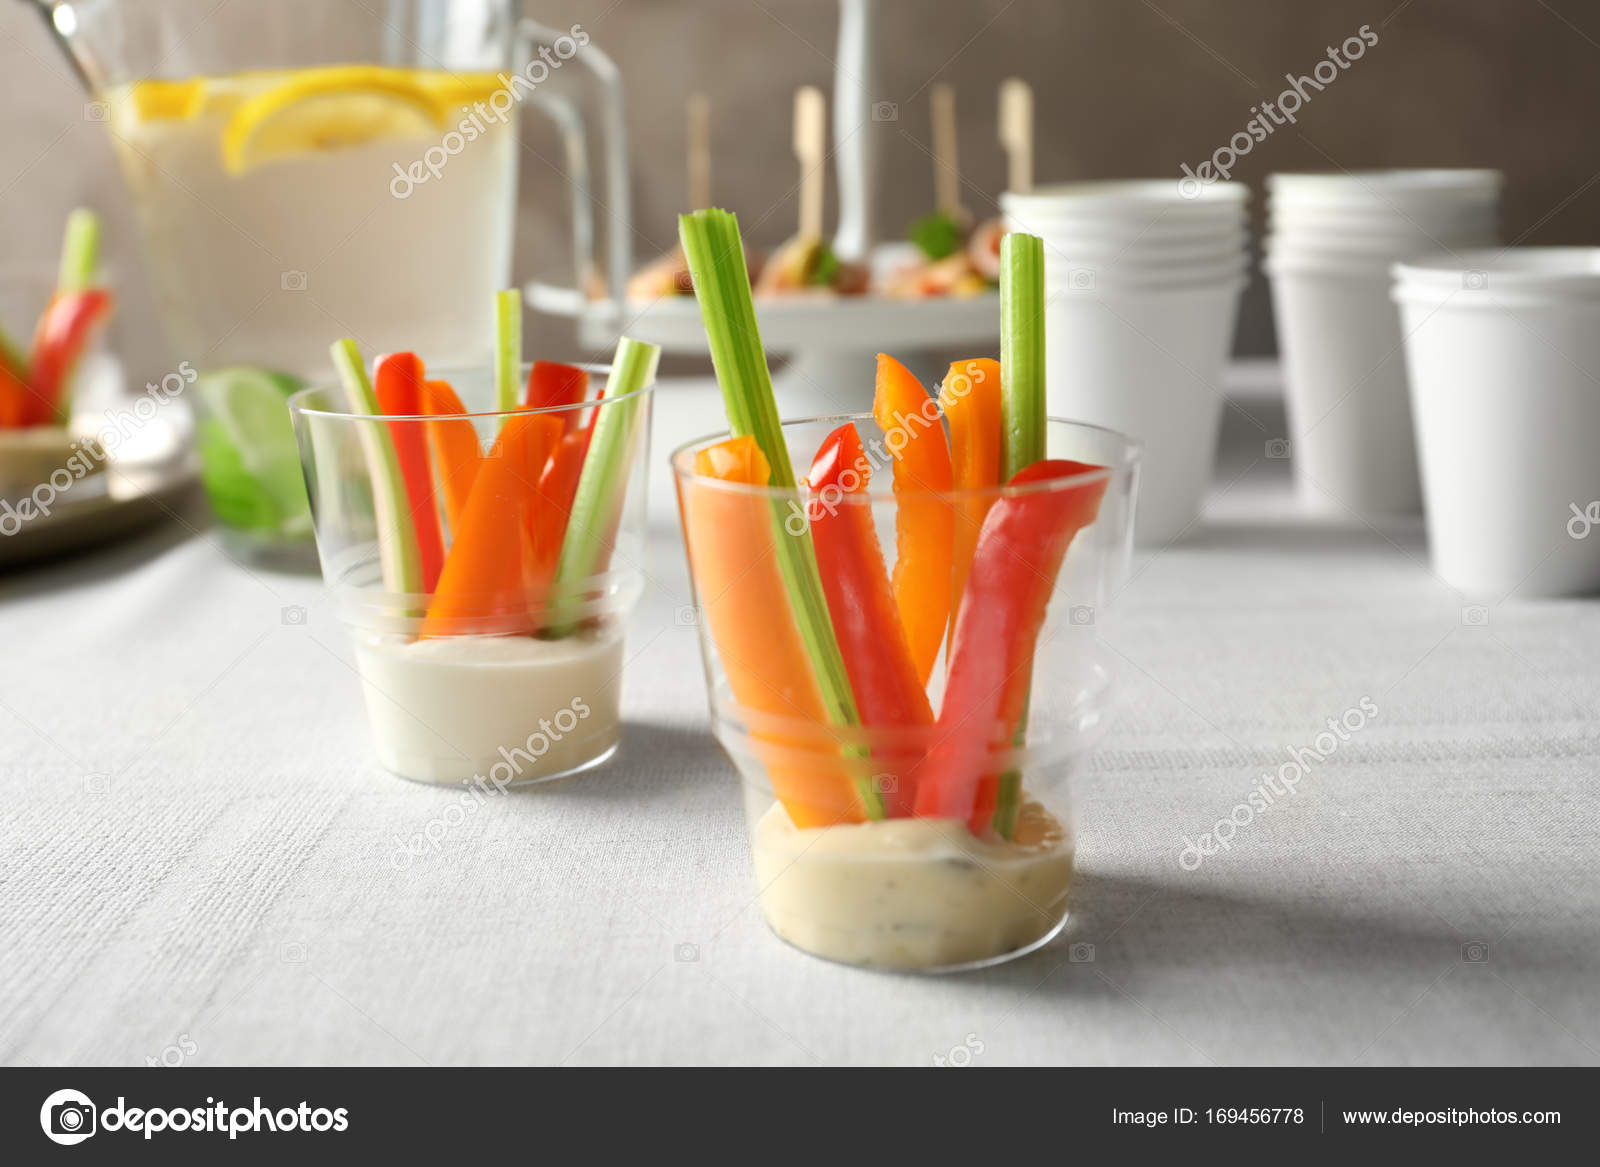 Appetizers For Baby Shower Stock Photo Belchonock 169456778